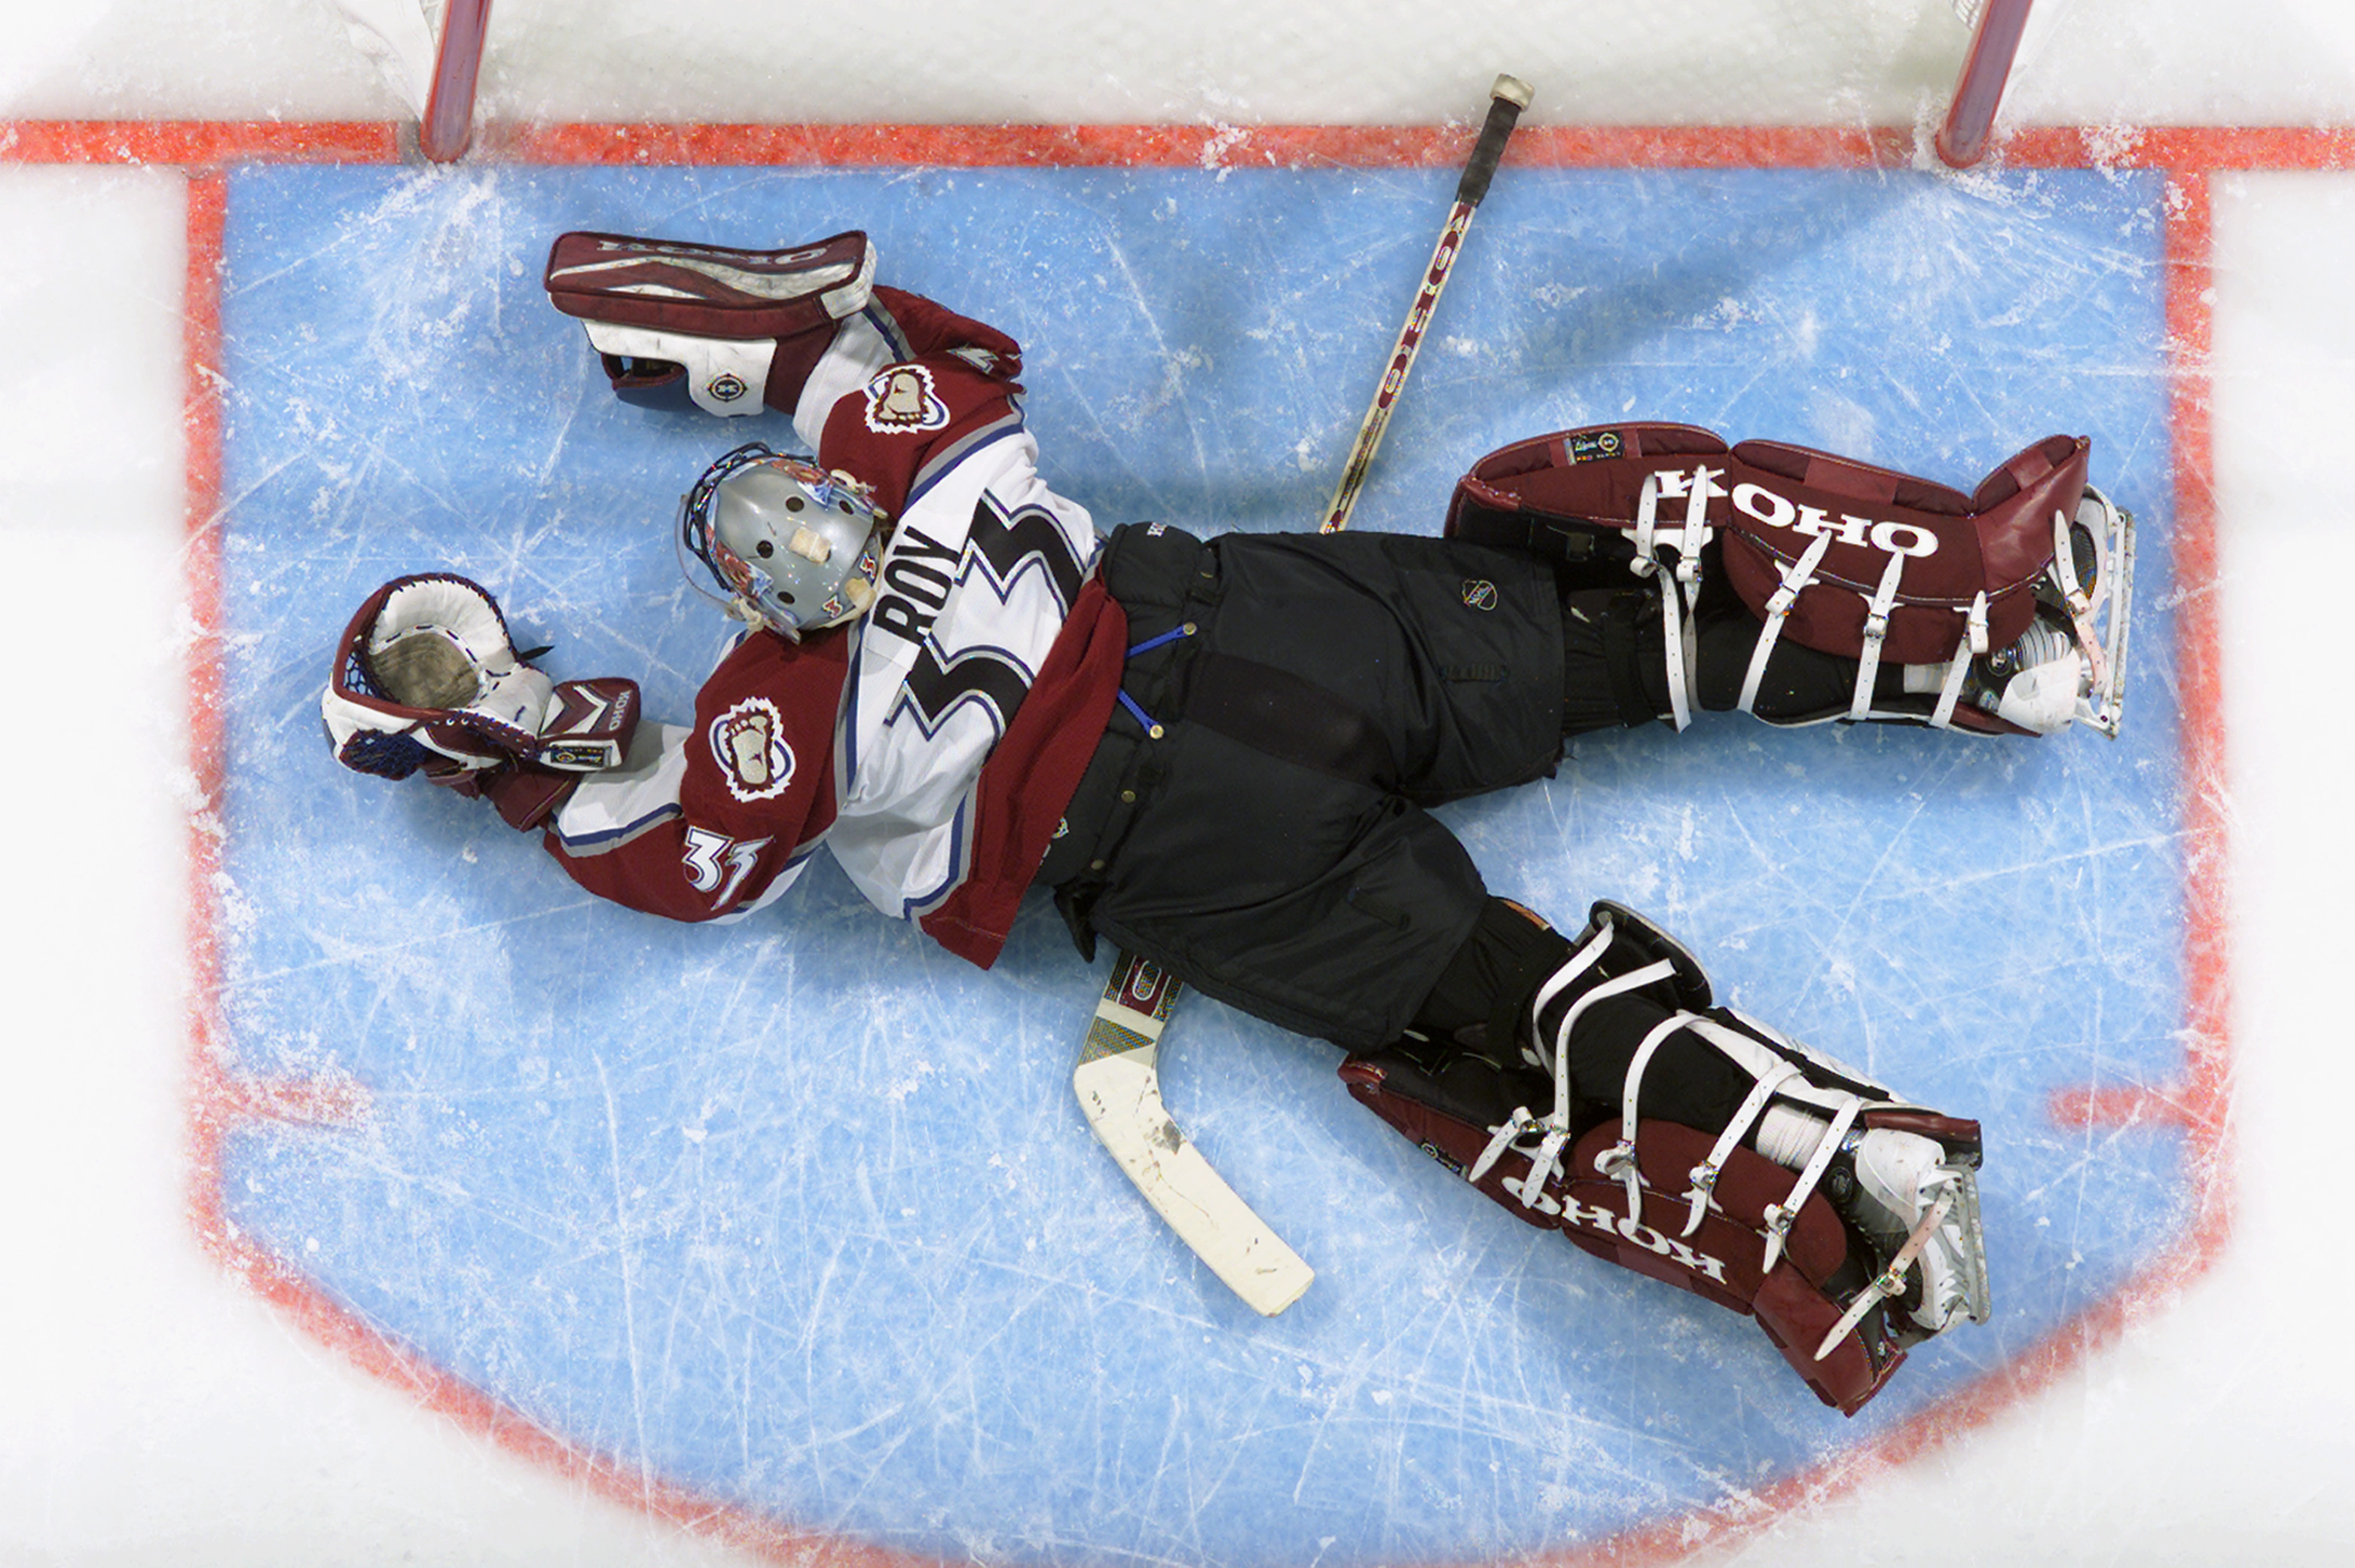 DENVER - APRIL 19:  Goalie Patrick Roy #33 of the Colorado Avalanche dives but can't stop Patrick Kuba of the Minnesota Wild from scoring during game five of the first round of the 2003 Western Conference Stanley Cup playoffs on April 19, 2003 at the Peps